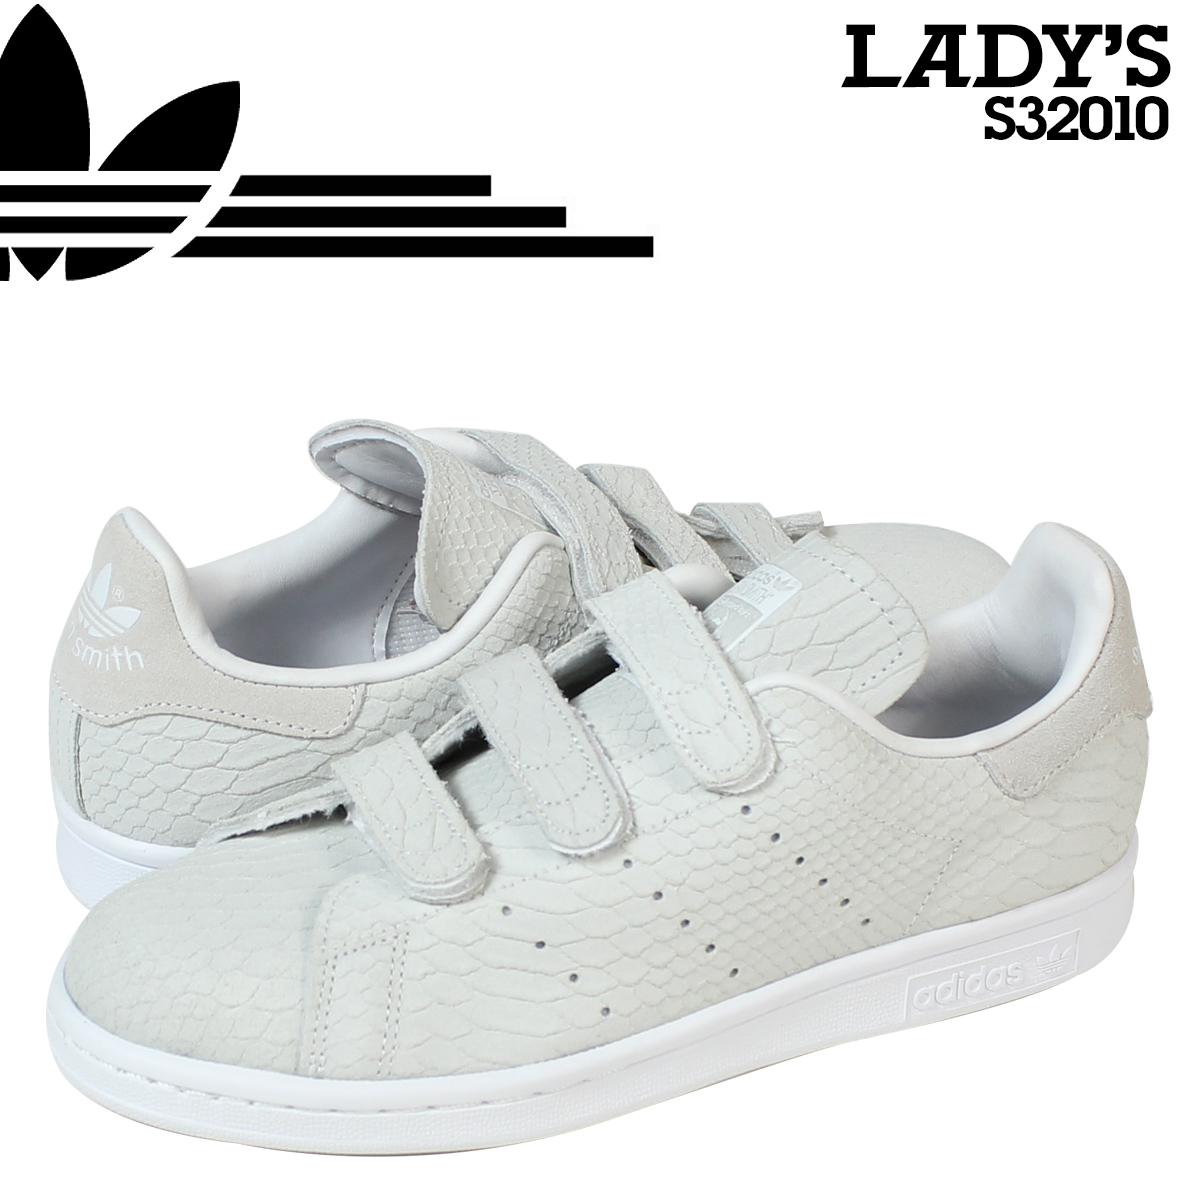 Sold Out Adidas Originals Stan Smith Cf W S32010 Of